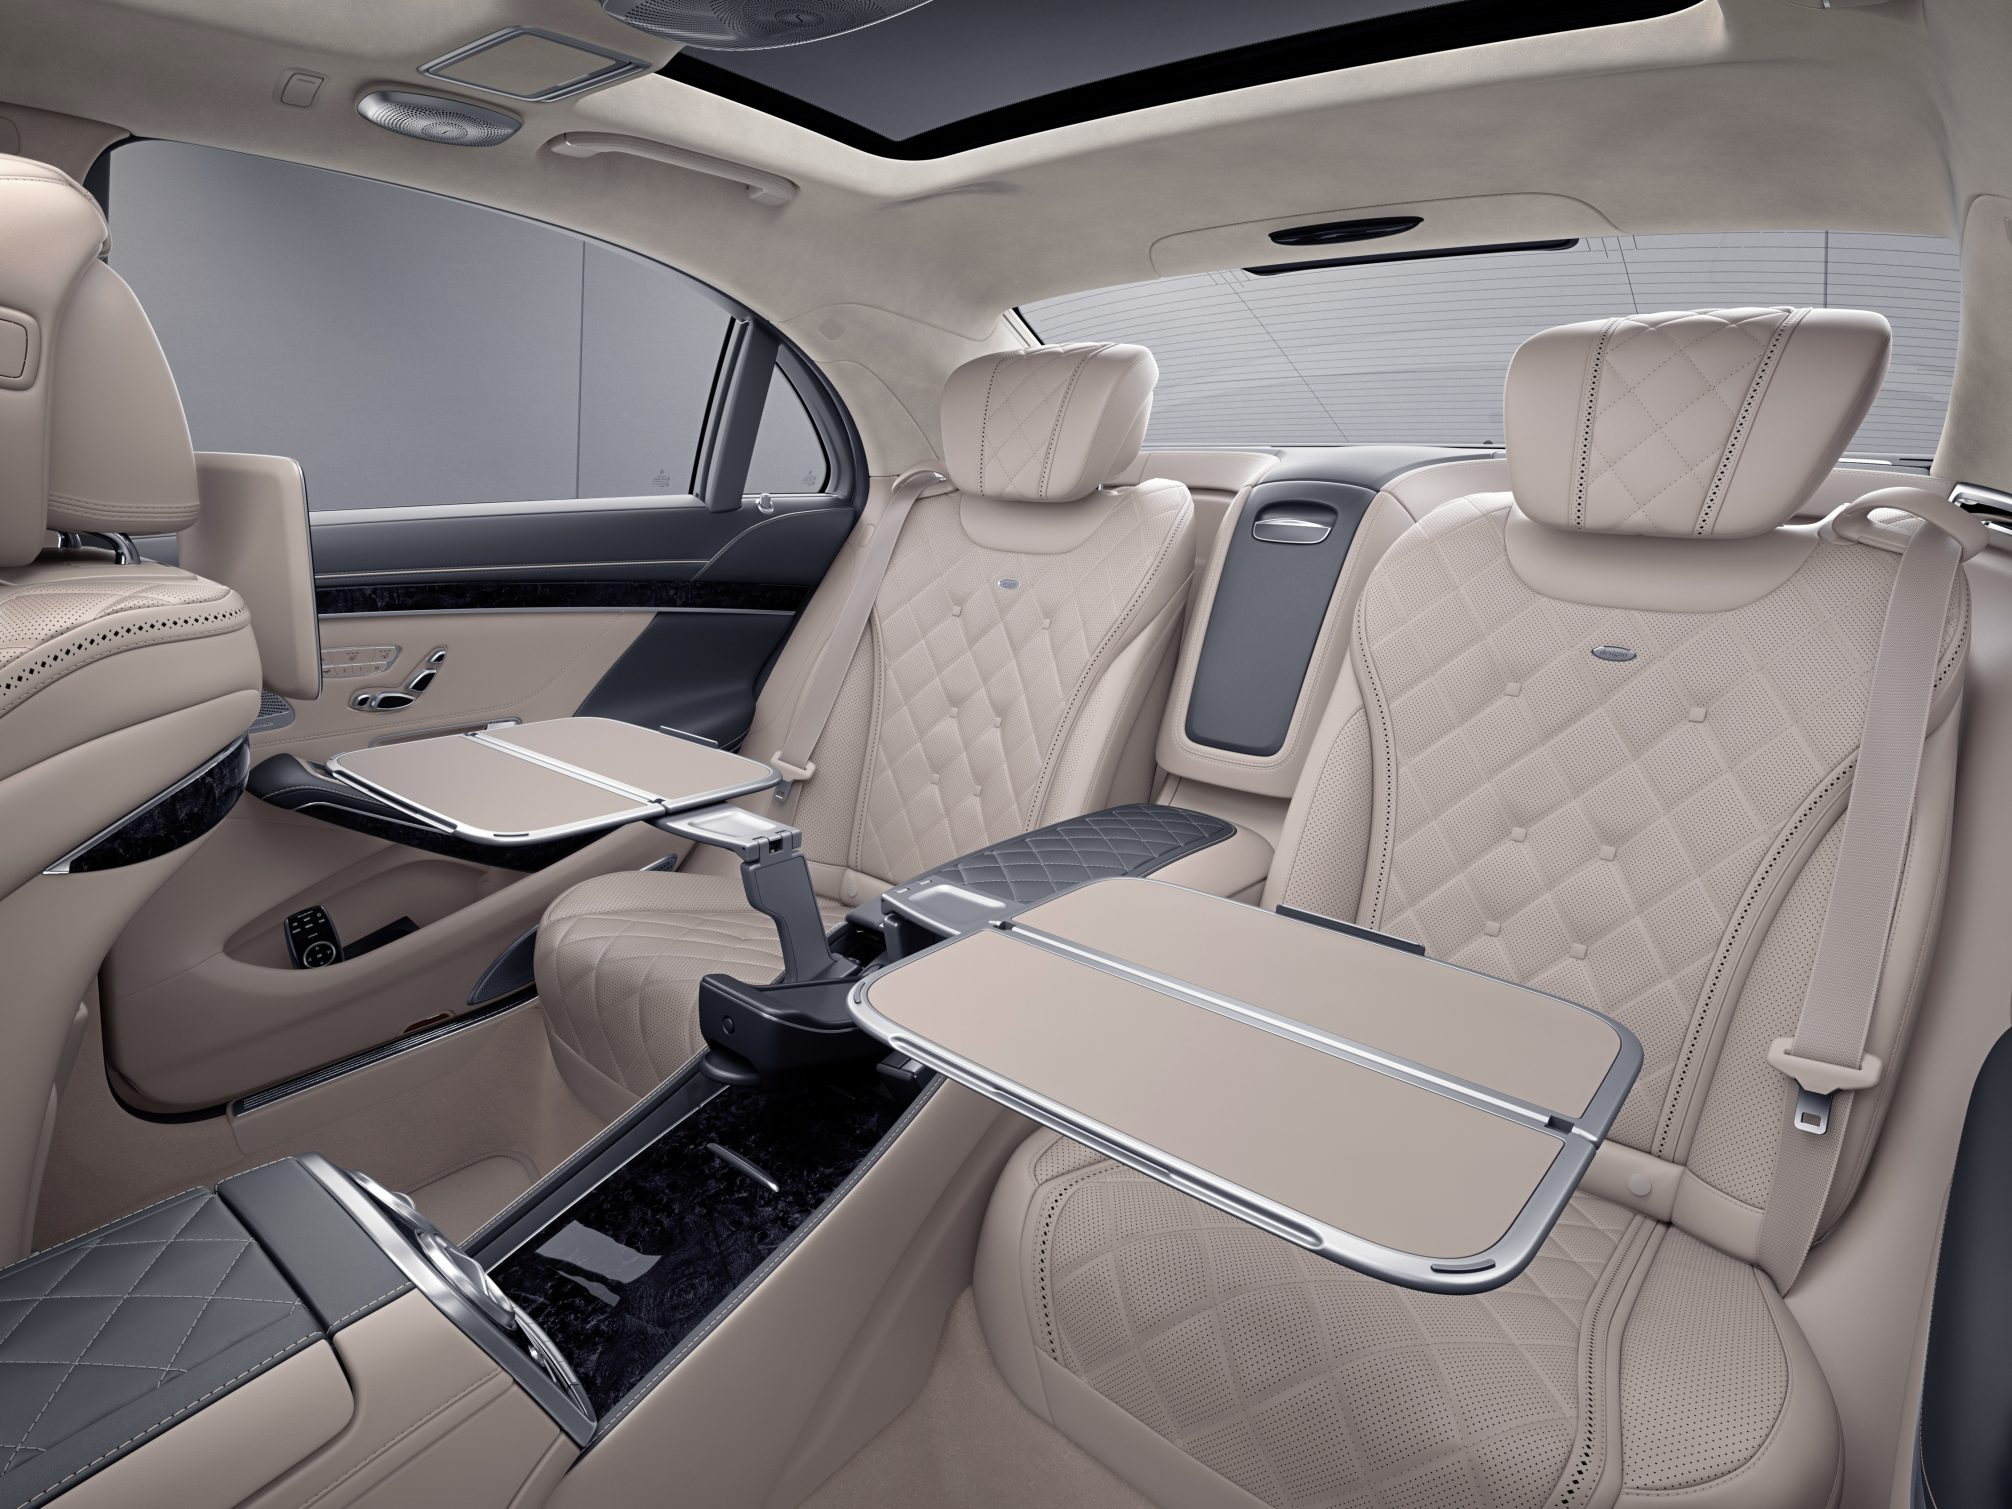 mercedes-benz Classe S interior